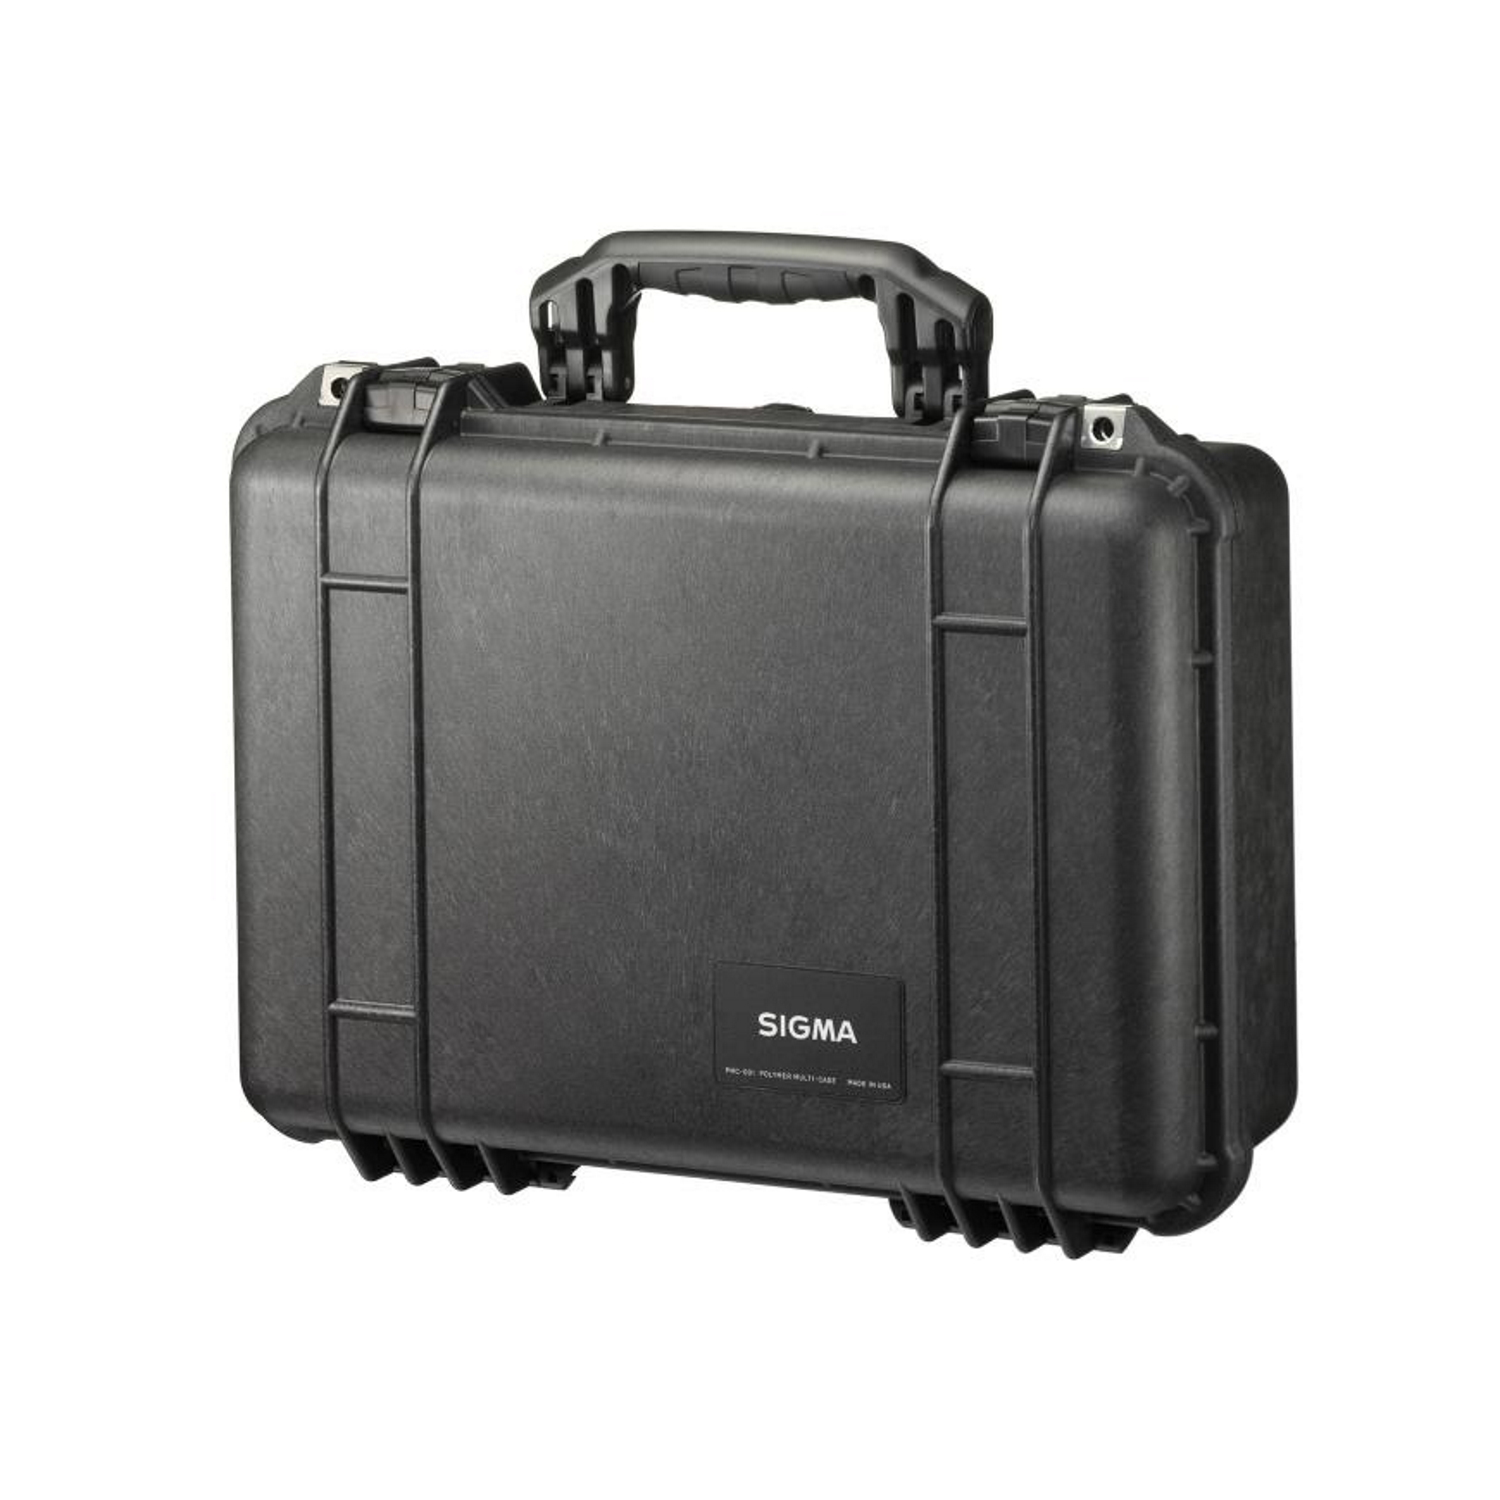 Sigma PMC-003 Hard Case for 14mm and 135mm Cine Lenses